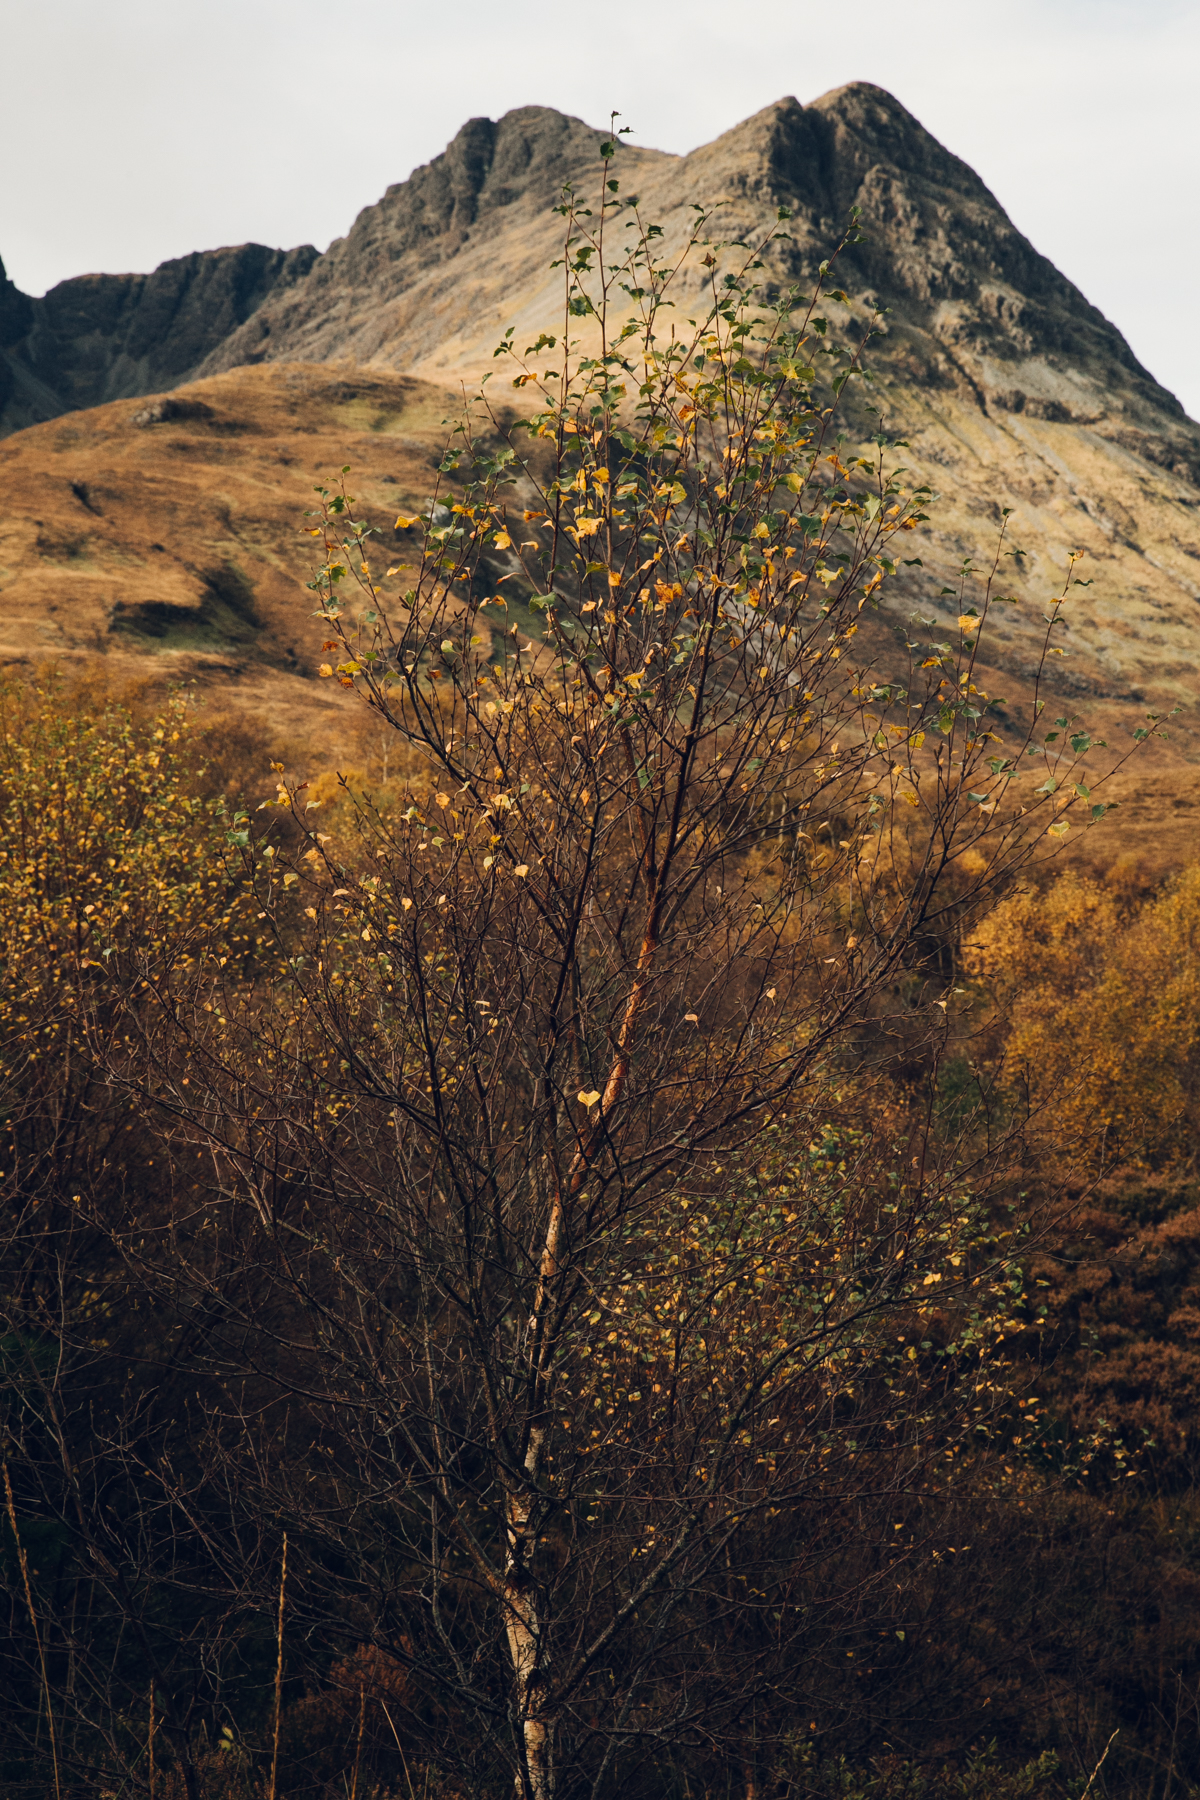 Autumn colours in the mountains.